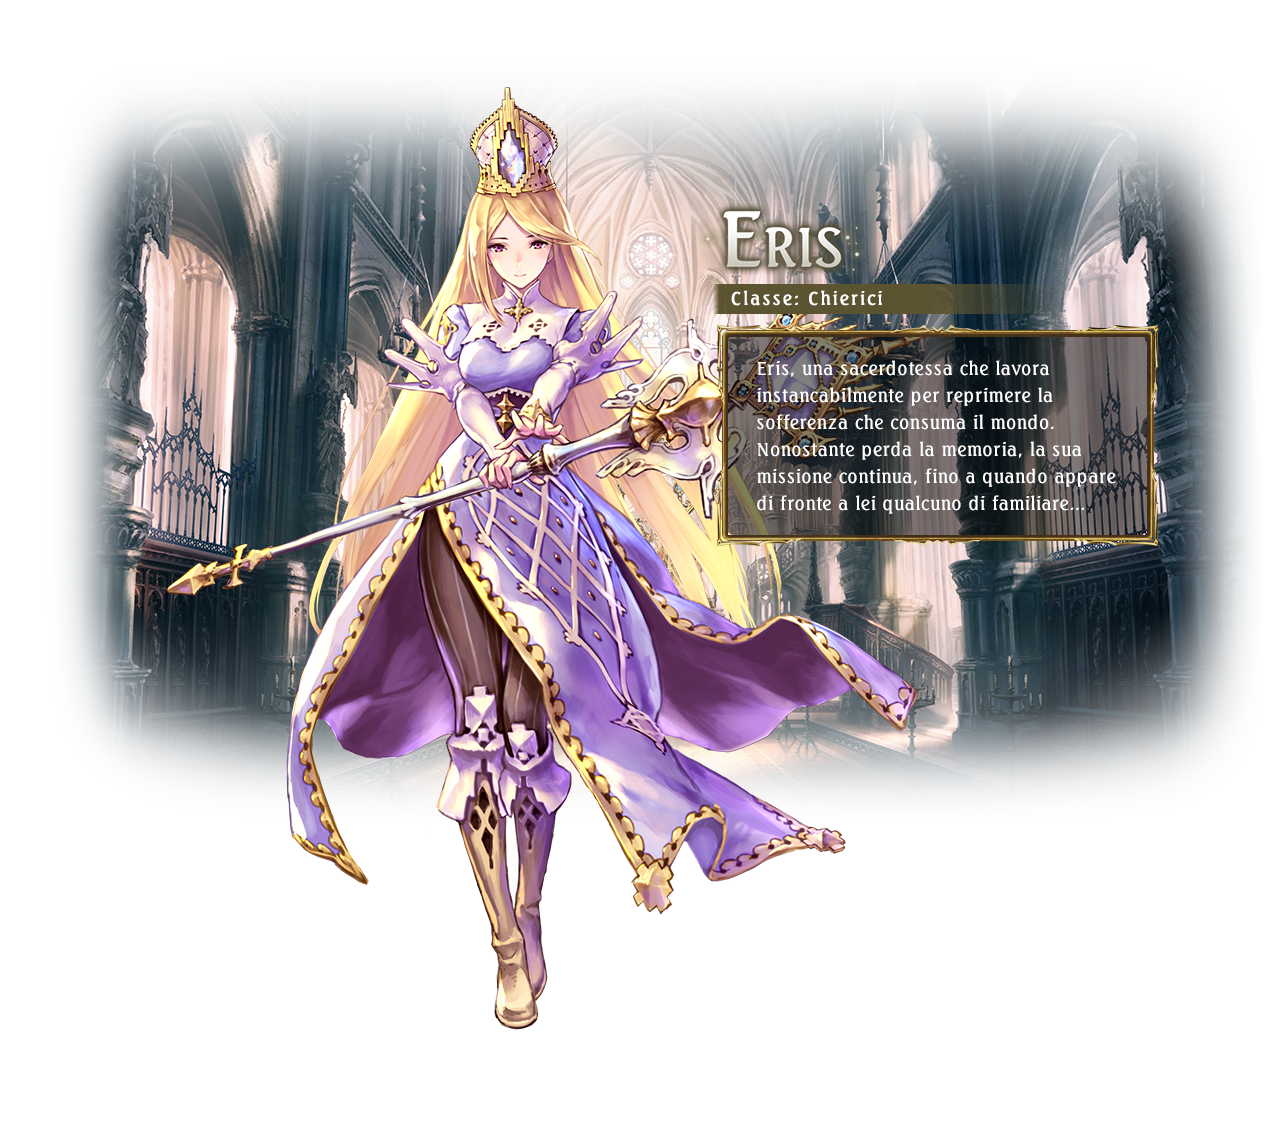 Eris / Class: Havencraft / Eris is a high priestess who works tirelessly to ease the suffering of humanity. She continues to serve despite having lost her memories when a familiar face appears.